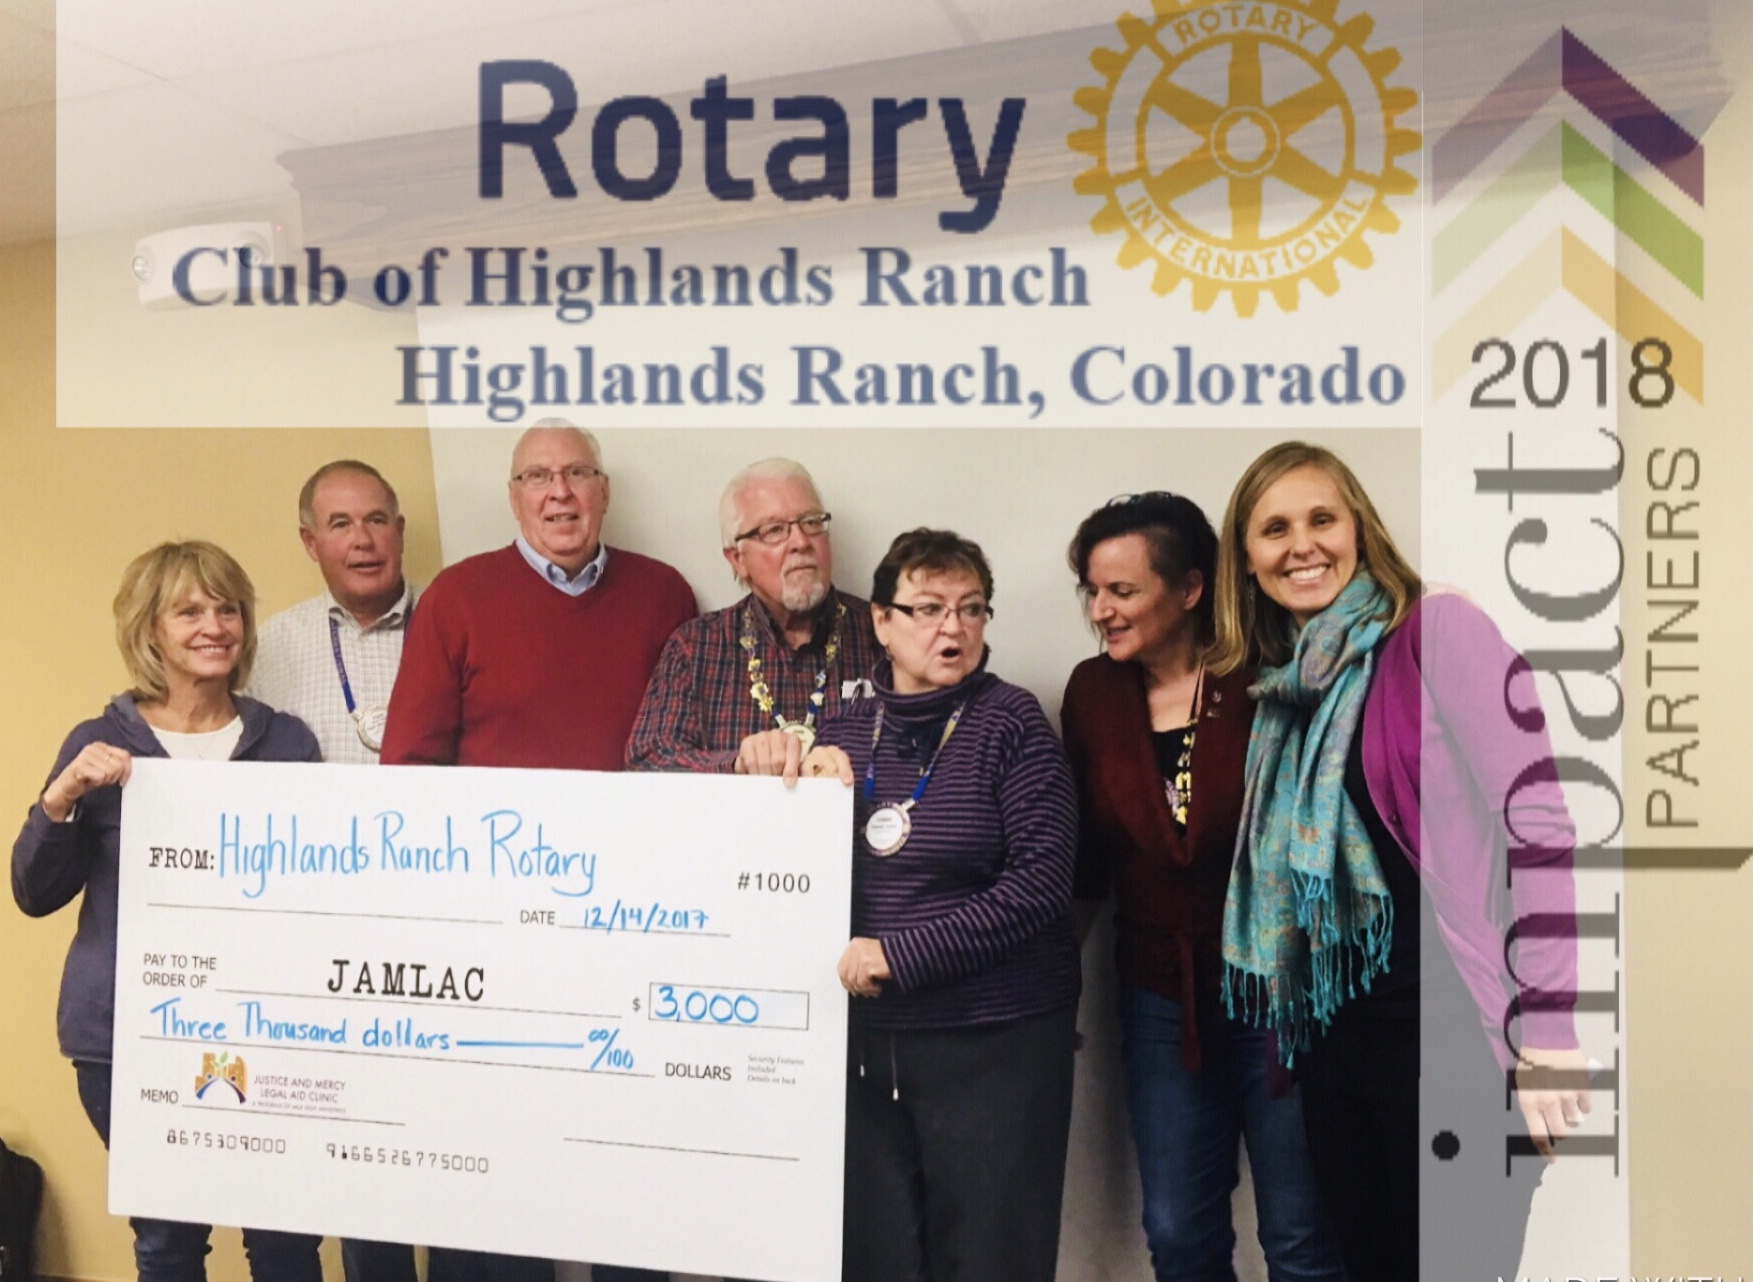 Highlands Ranch Rotary is an 2018 Impact Partner